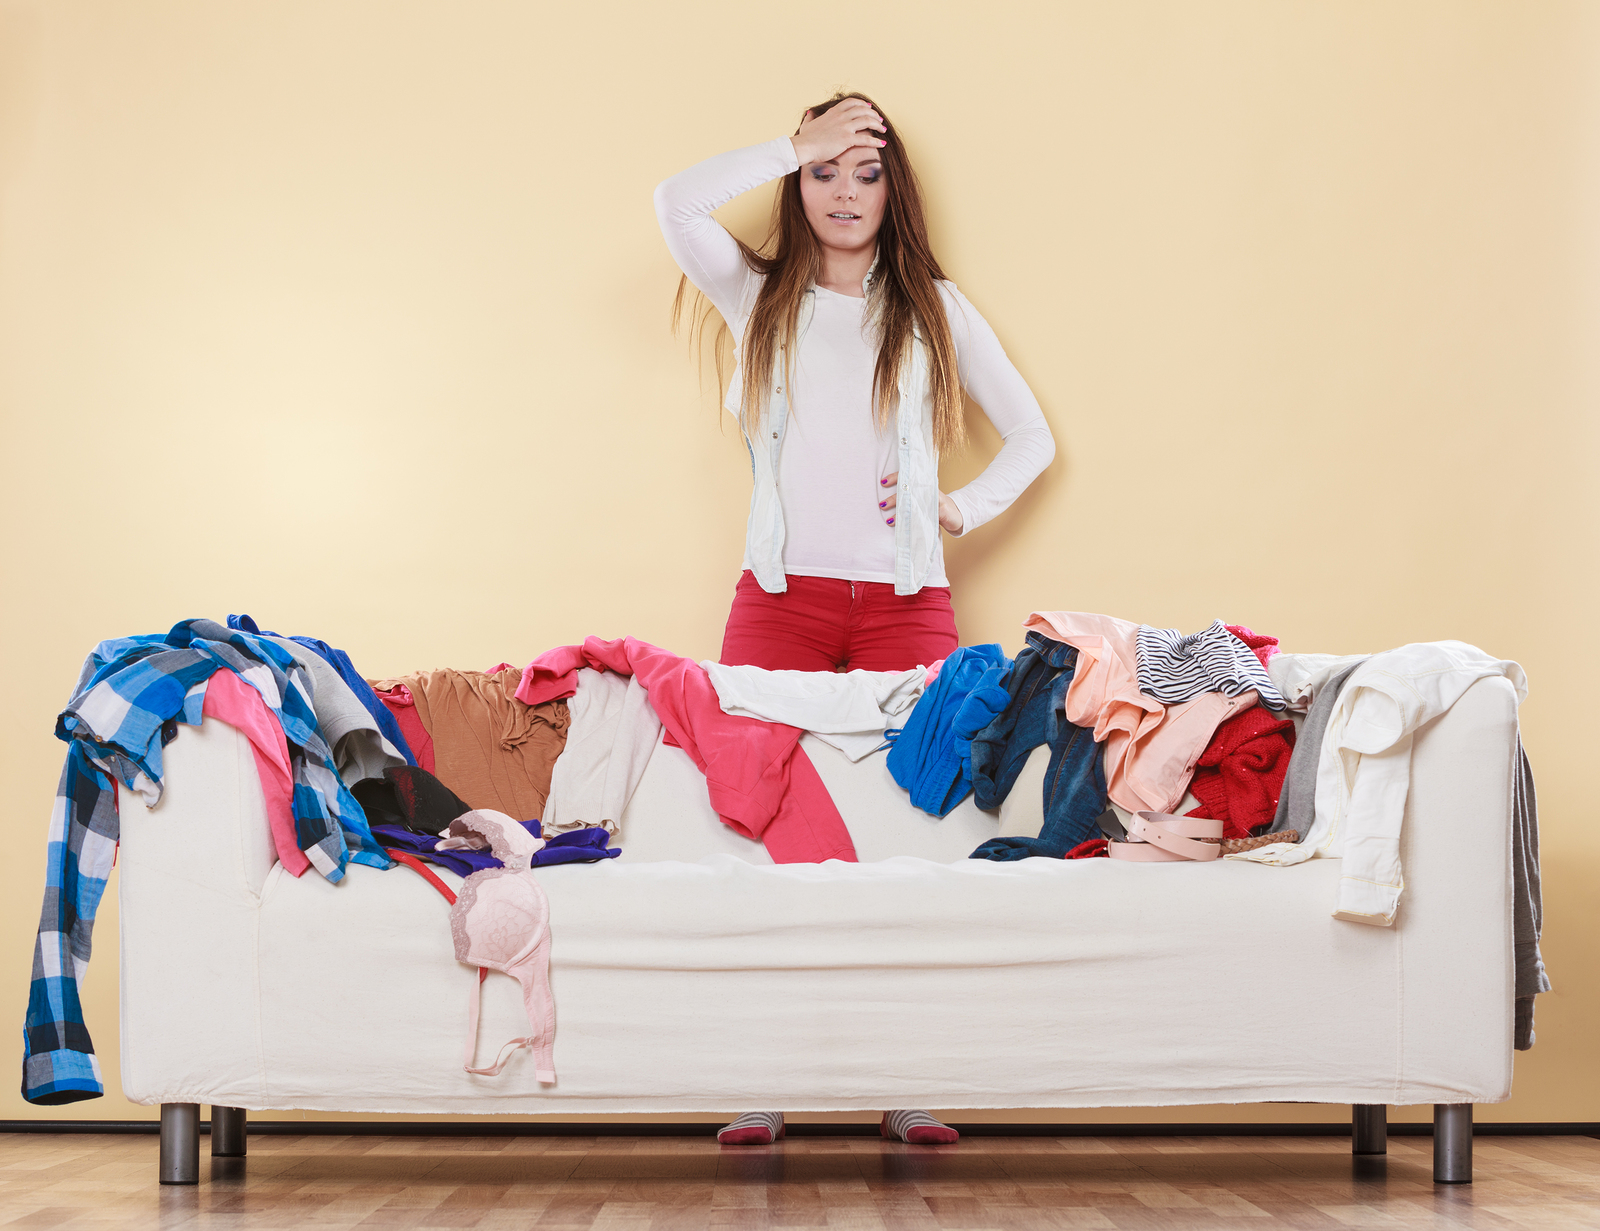 woman in dirty room not ready for house showing